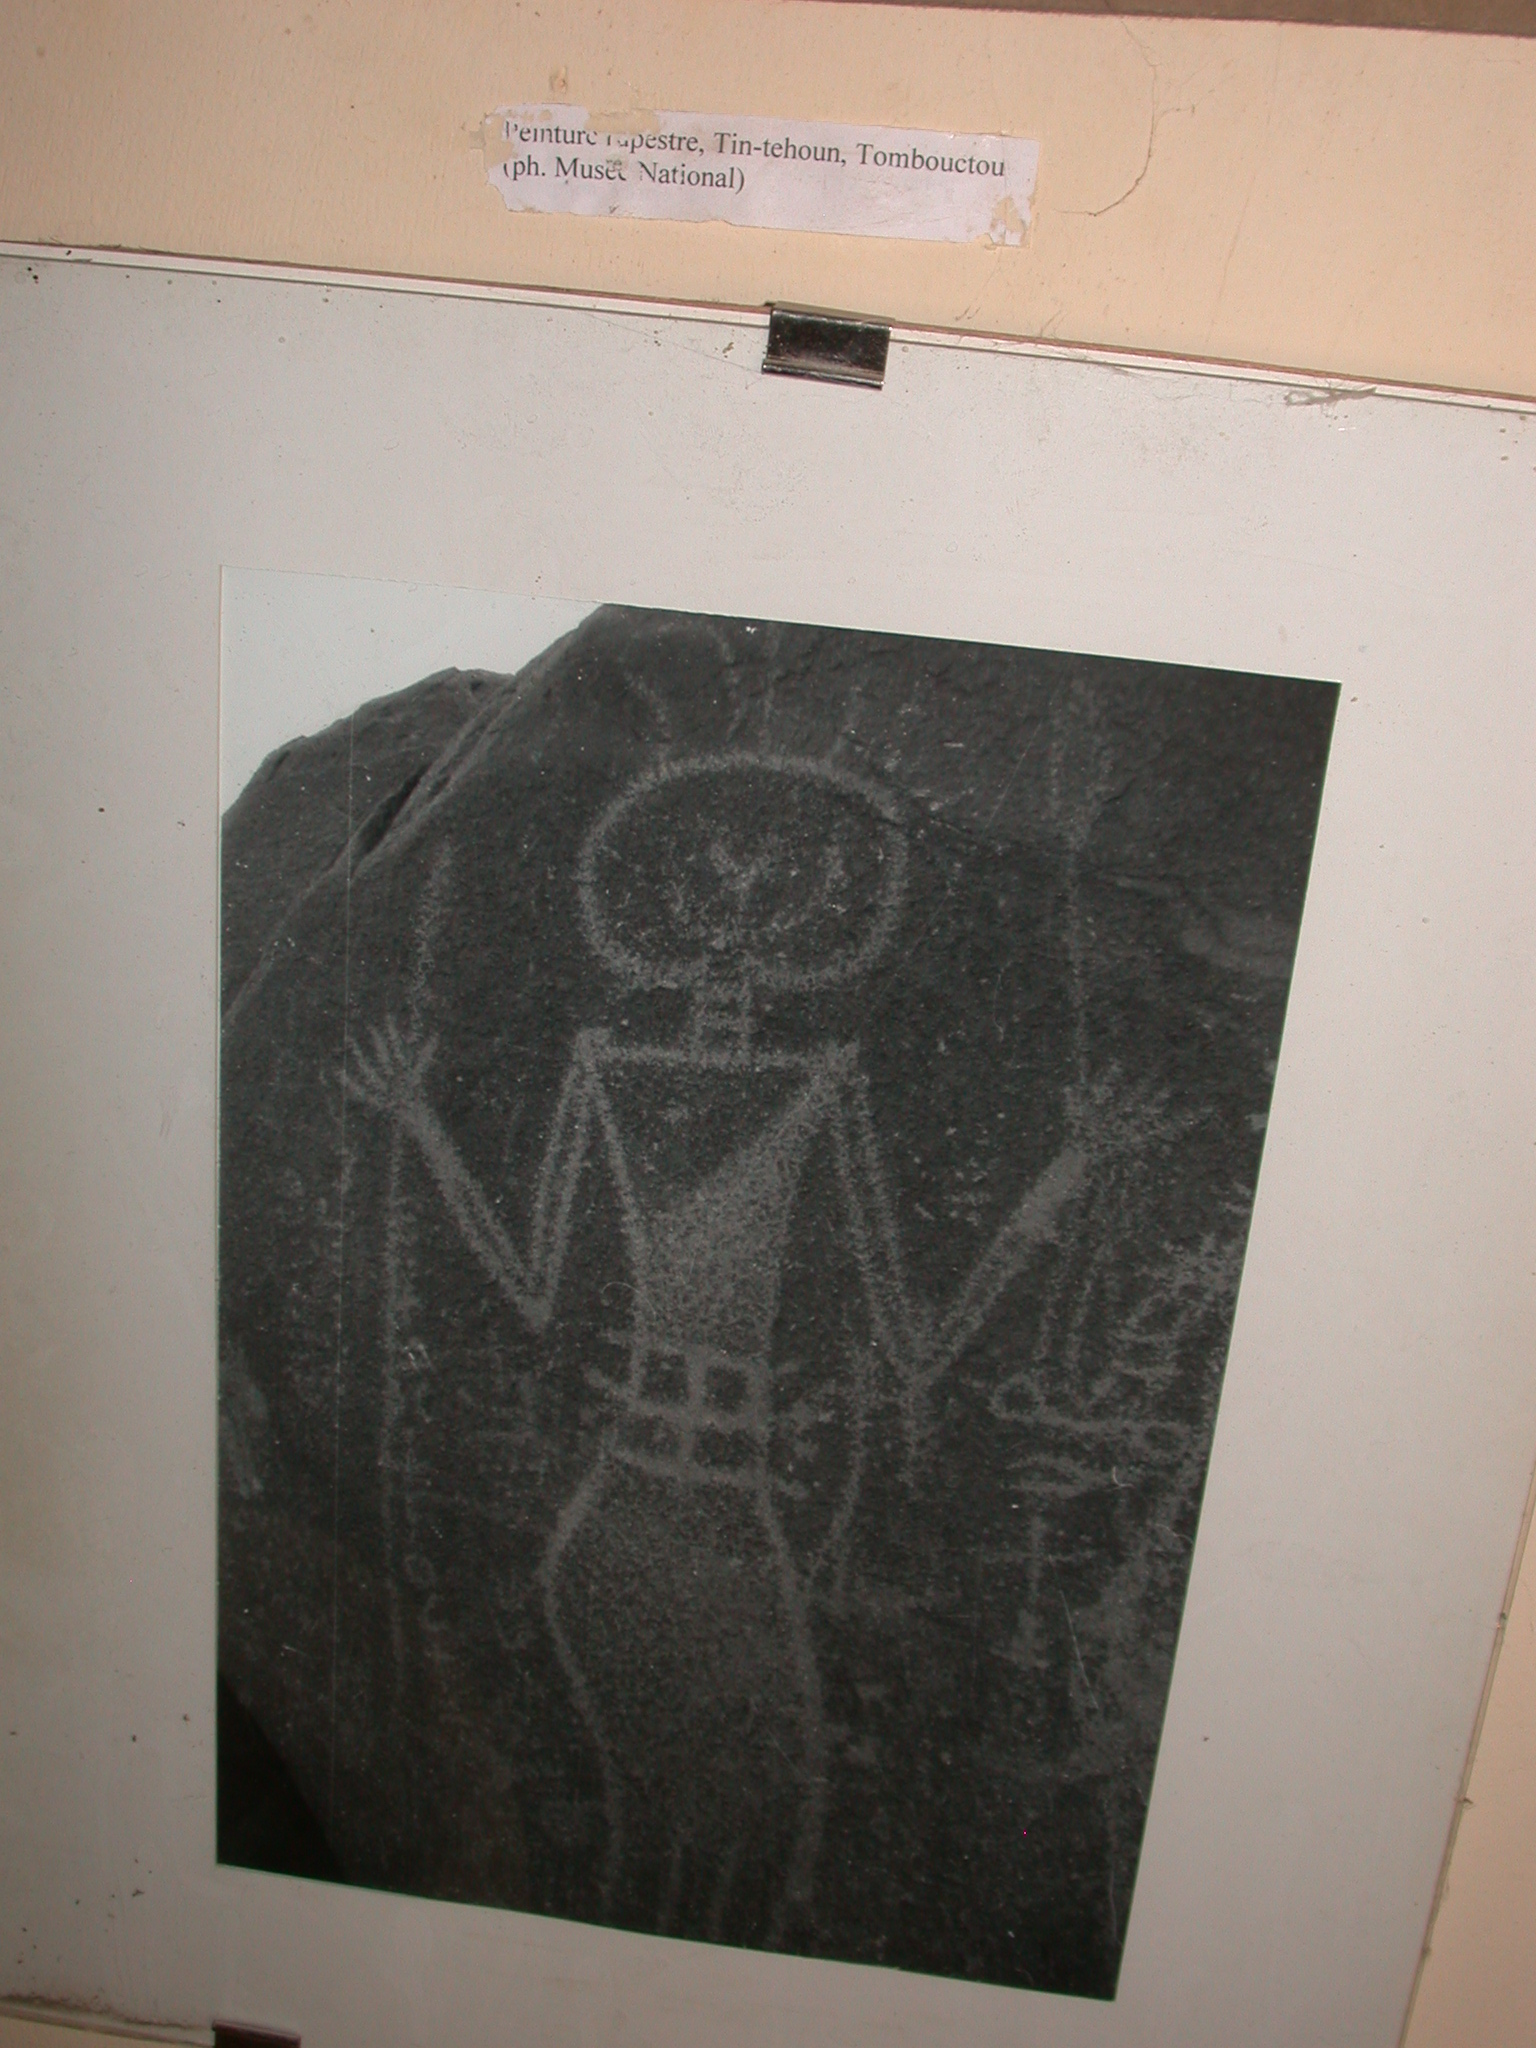 Photo of Tin-Tehoun Cave Painting, Original Painting Apparently Lost, Timbuktu Ethnological Museum, Timbuktu, Mali